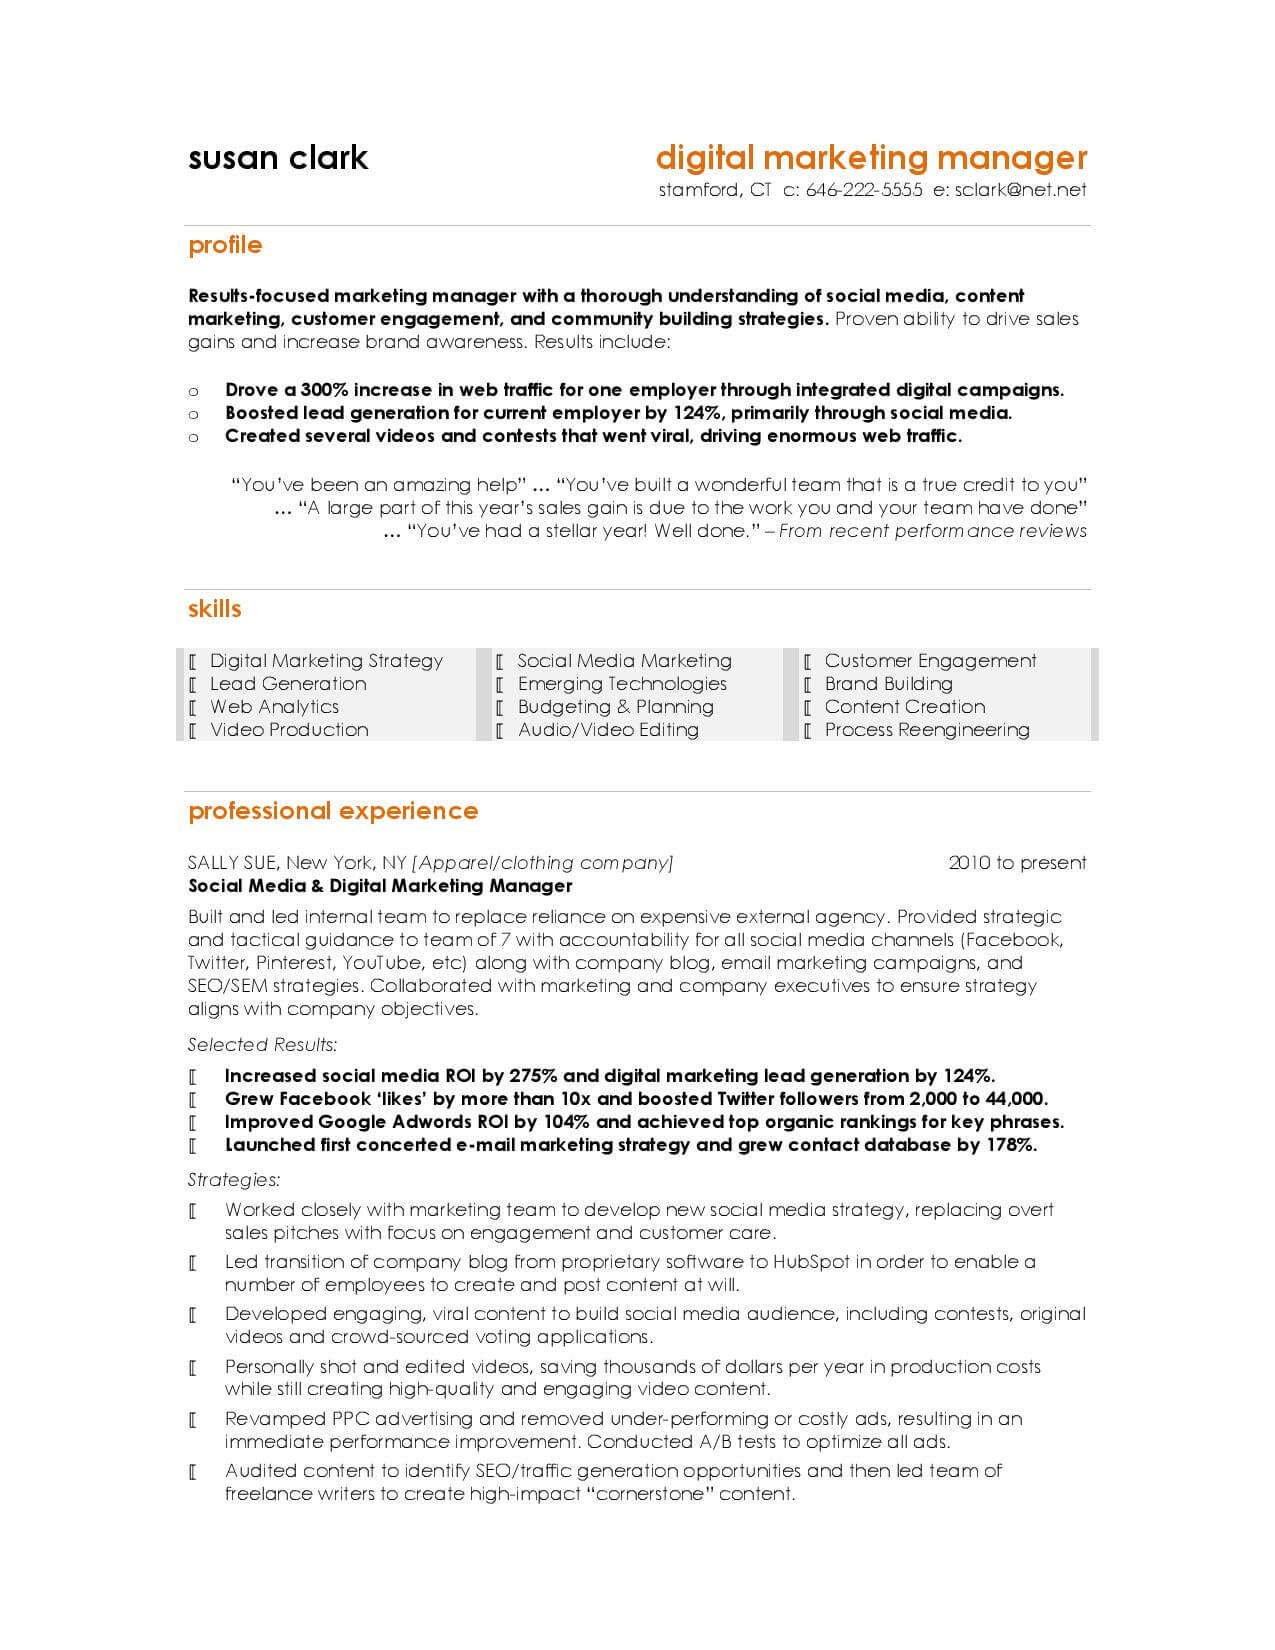 resume cover page example yahoo best resume and all letter for cv resume cover page example yahoo sample cover letter and resume 2012 macquarie university cover letter sample